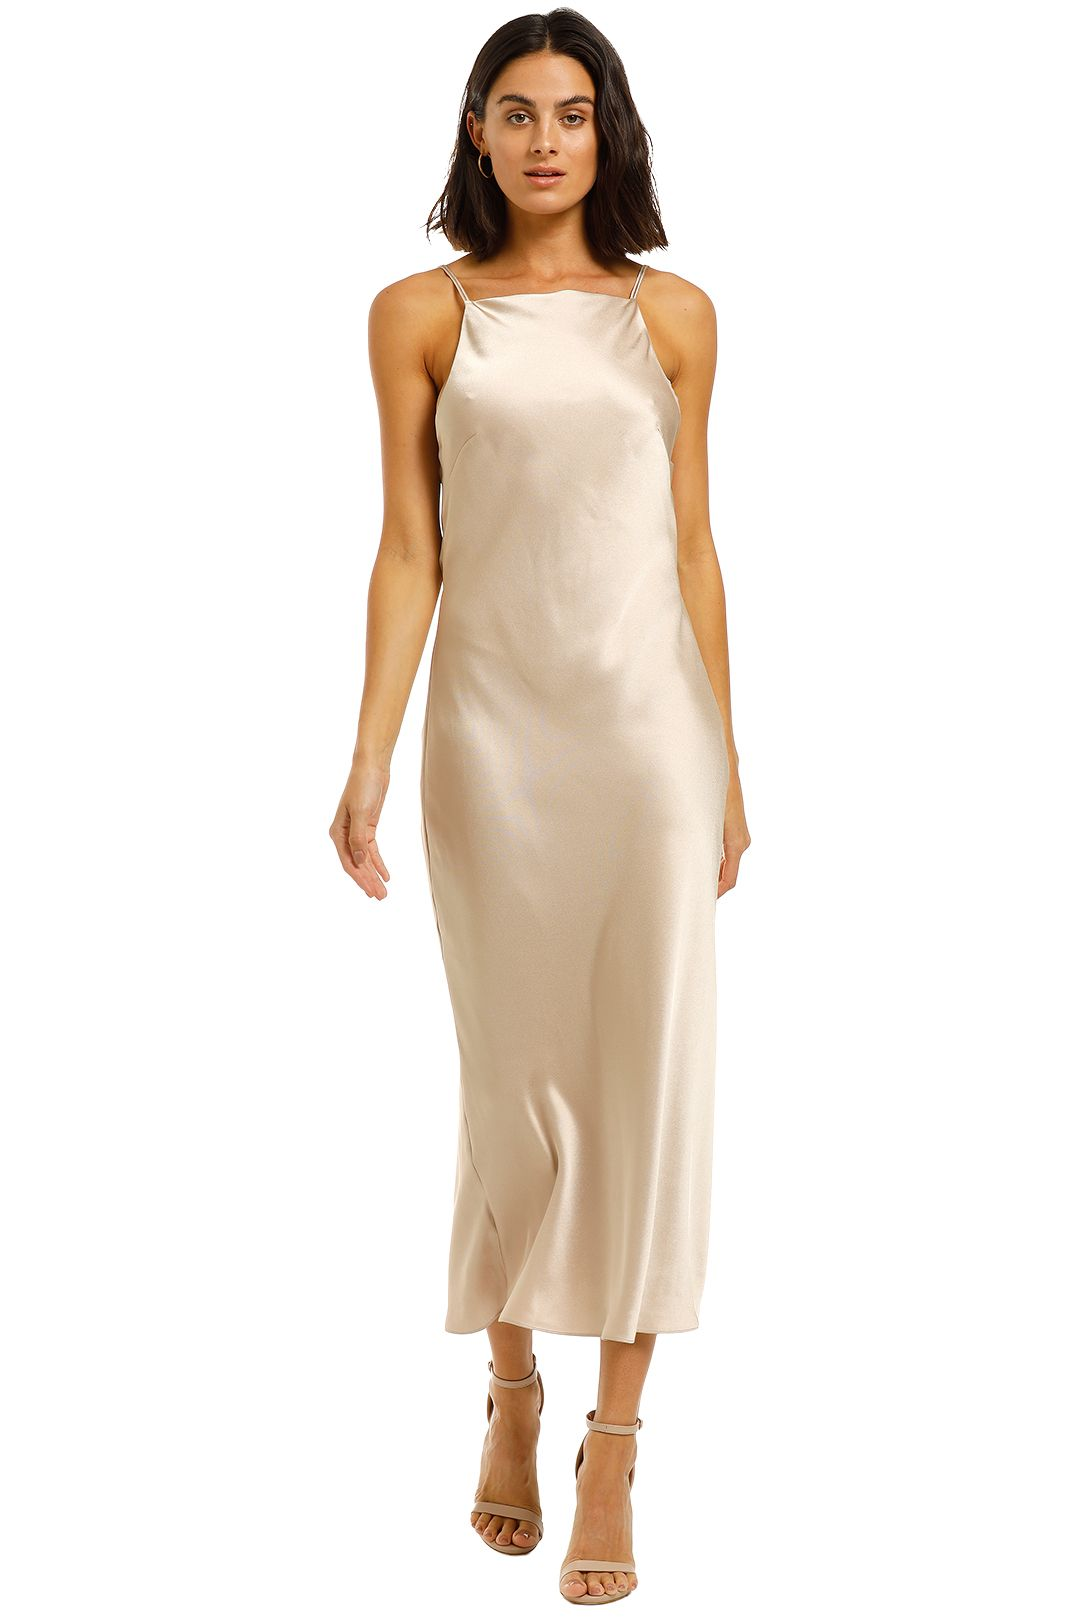 Camilla-and-Marc-Antonelli-Backless-Dress-Champagne-Front